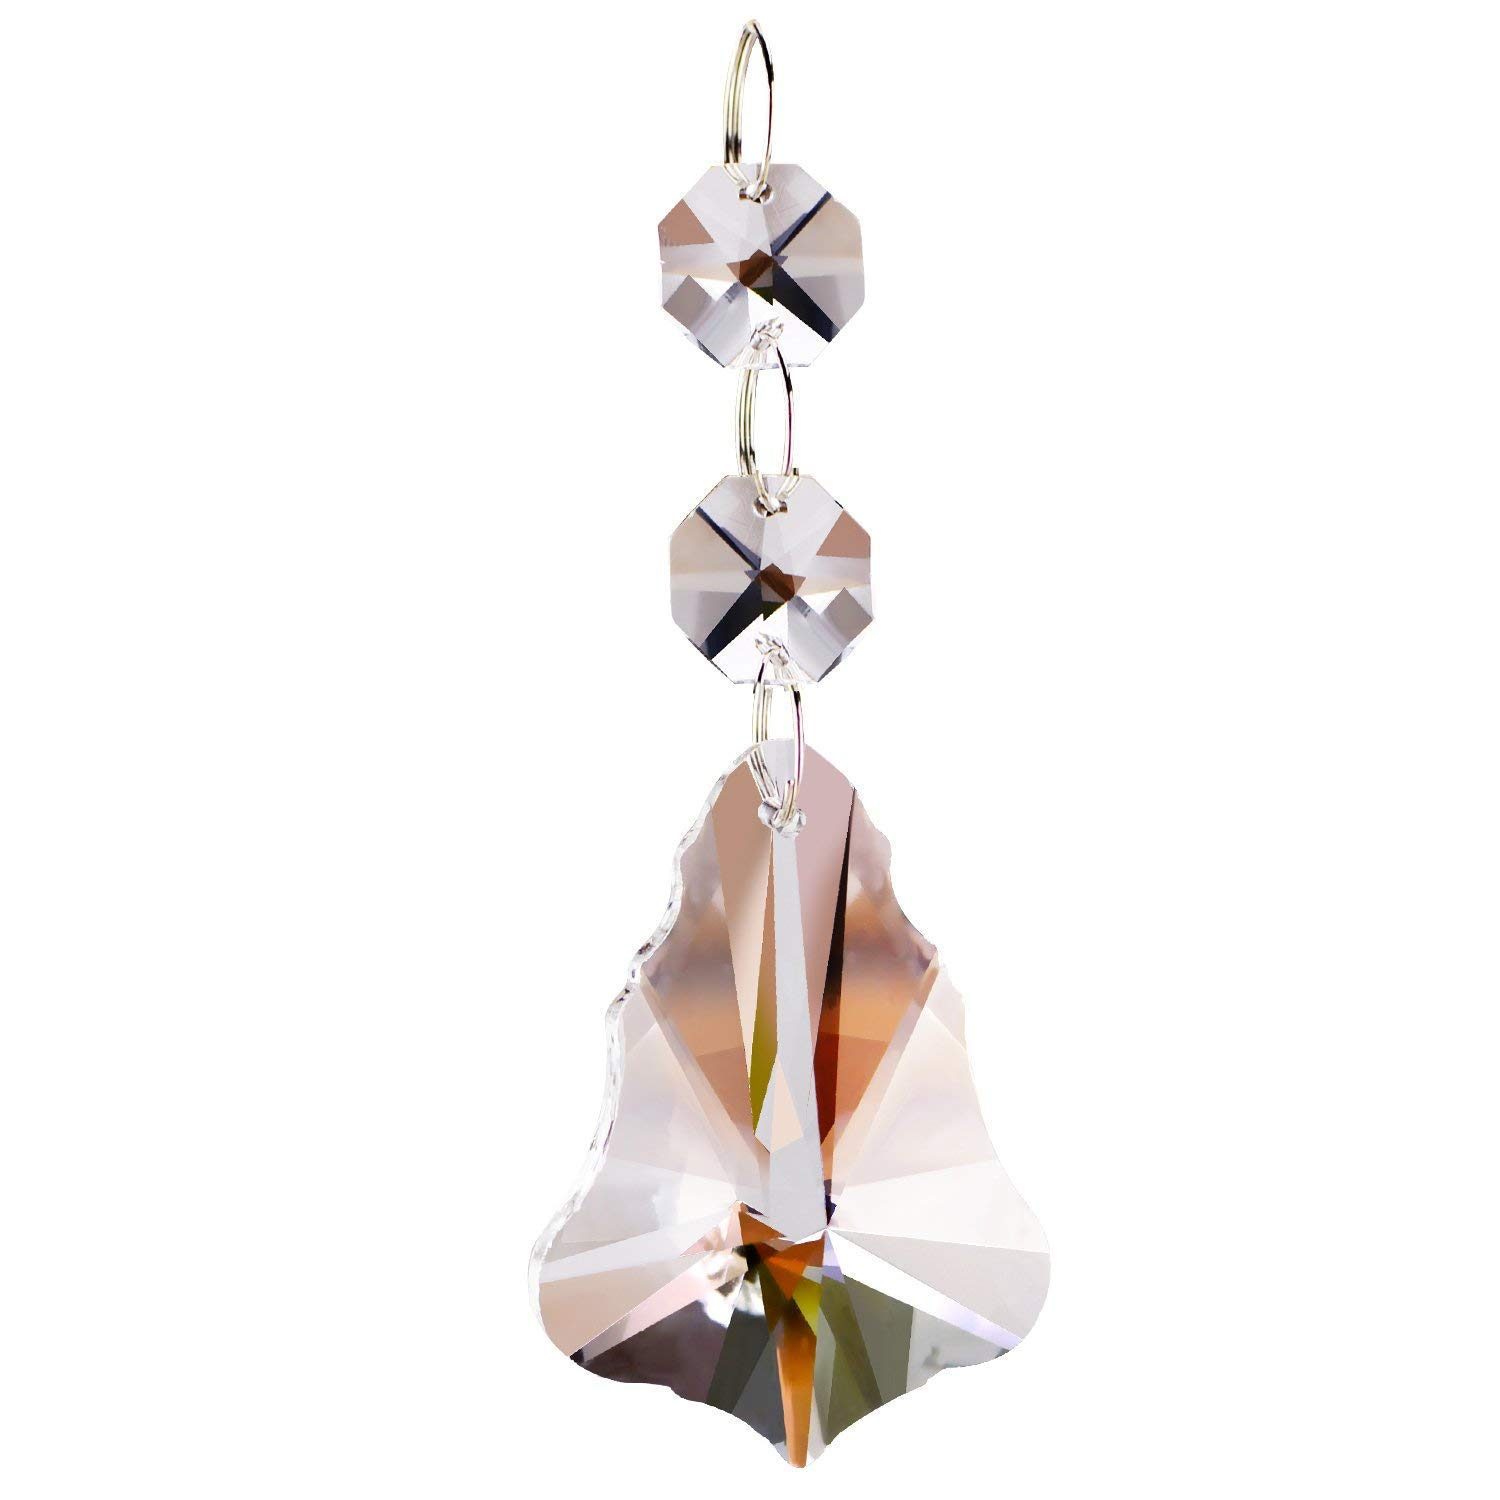 Fushing 10Pcs Christmas Tree Style Crystal Beads Drop Pendants Chandelier Curtain Lamp Chain Prisms for Wedding Party Decoration (50mm)